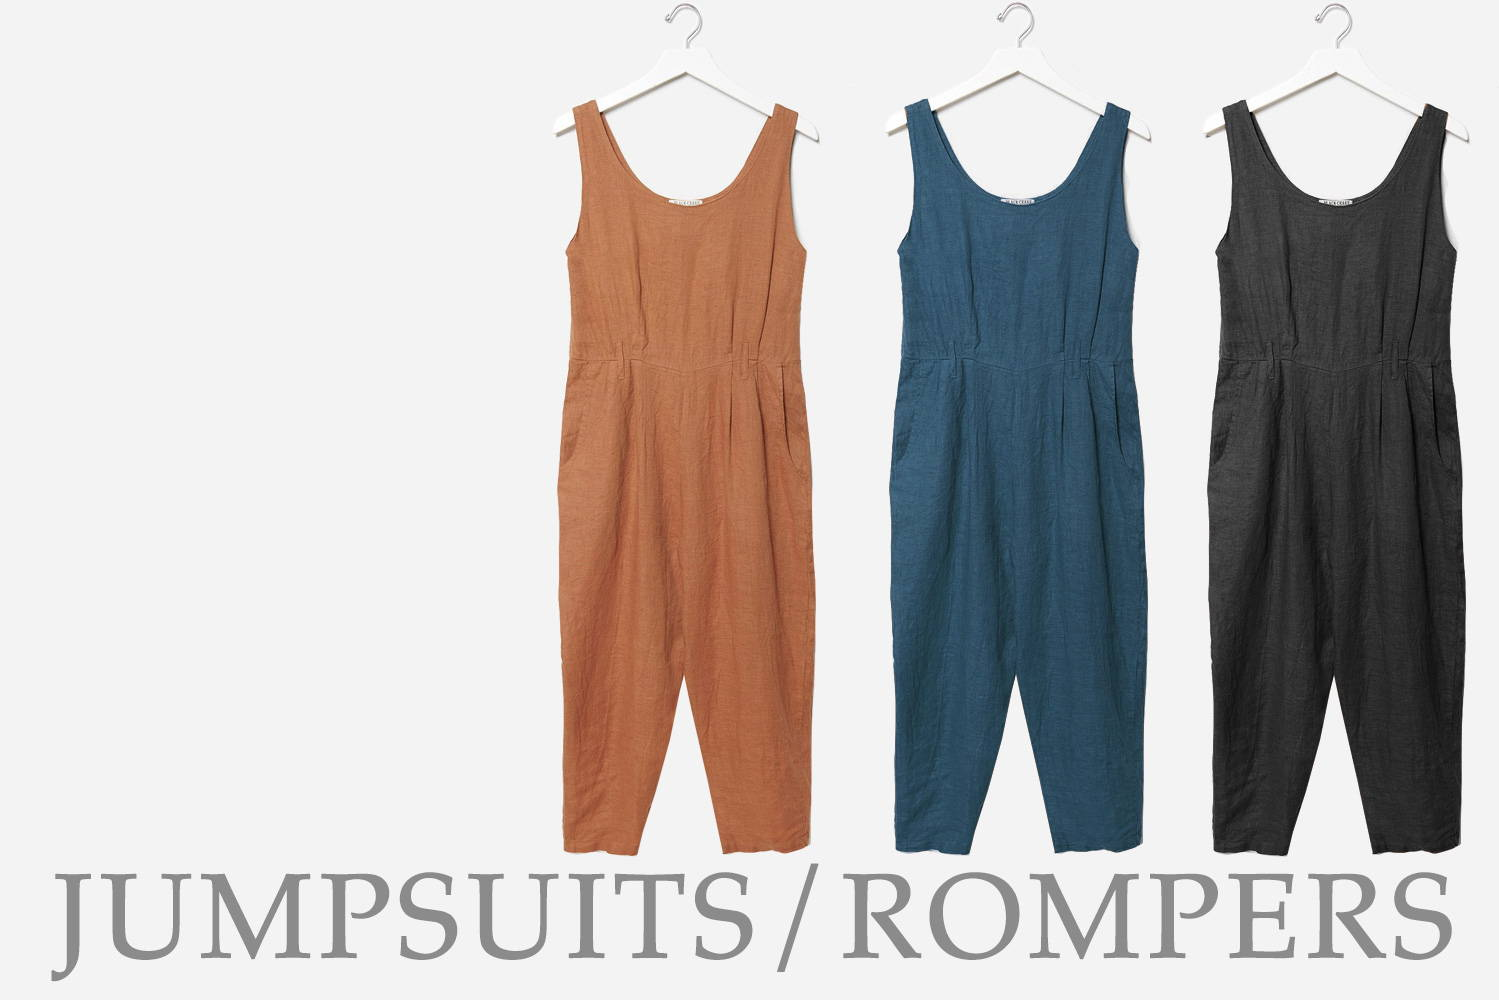 Shop Womens Jumpsuits / Rompers